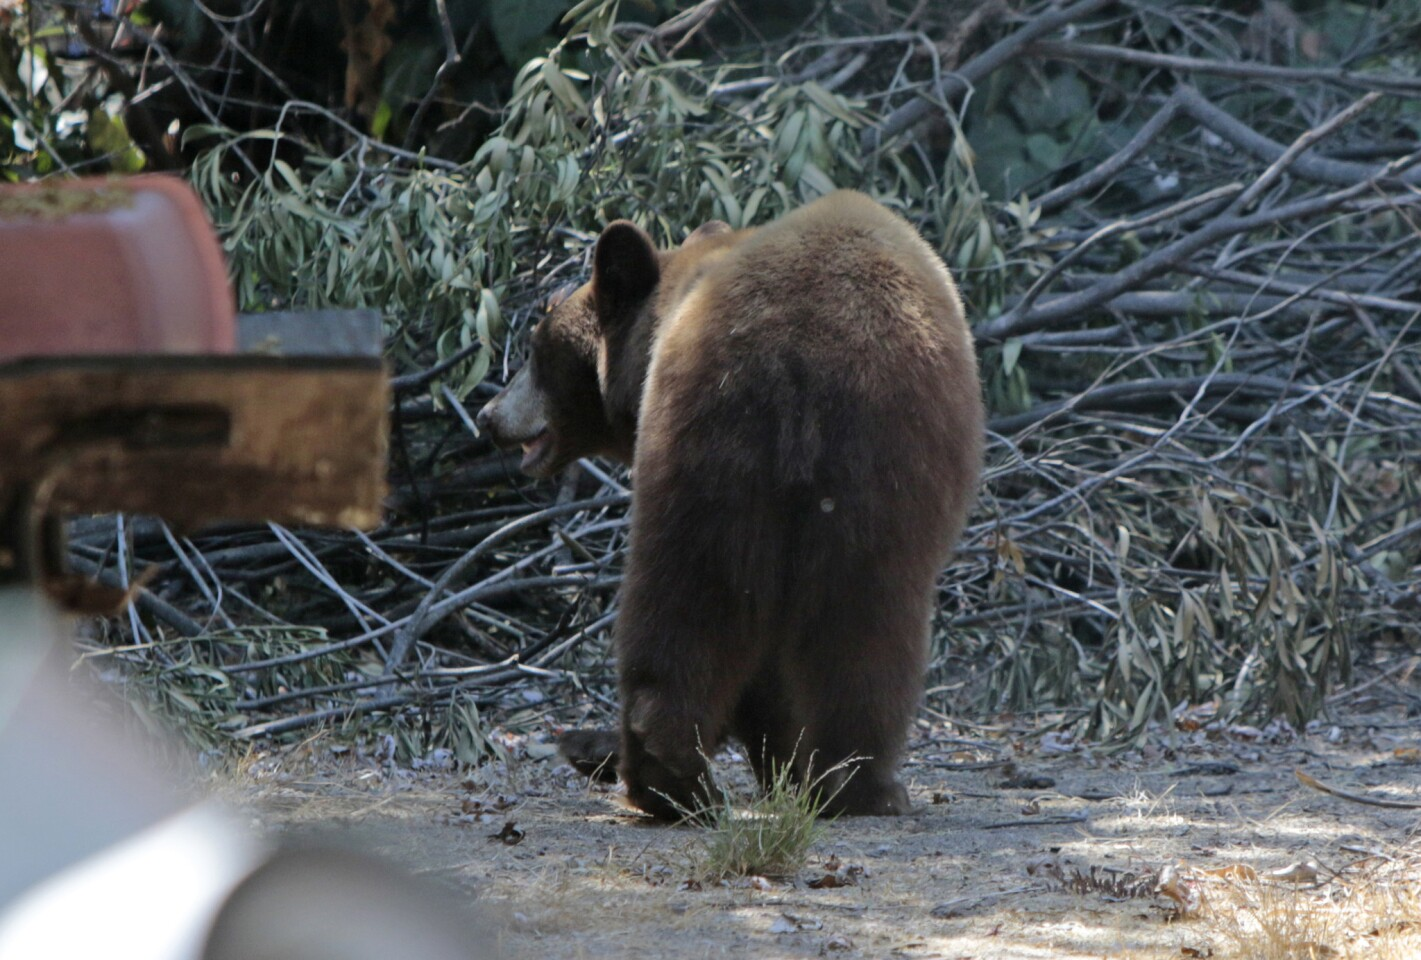 A bear cub, which was spotted roaming around a Monrovia neighborhood less than a half-mile from the Angeles National Forest in July 2014.